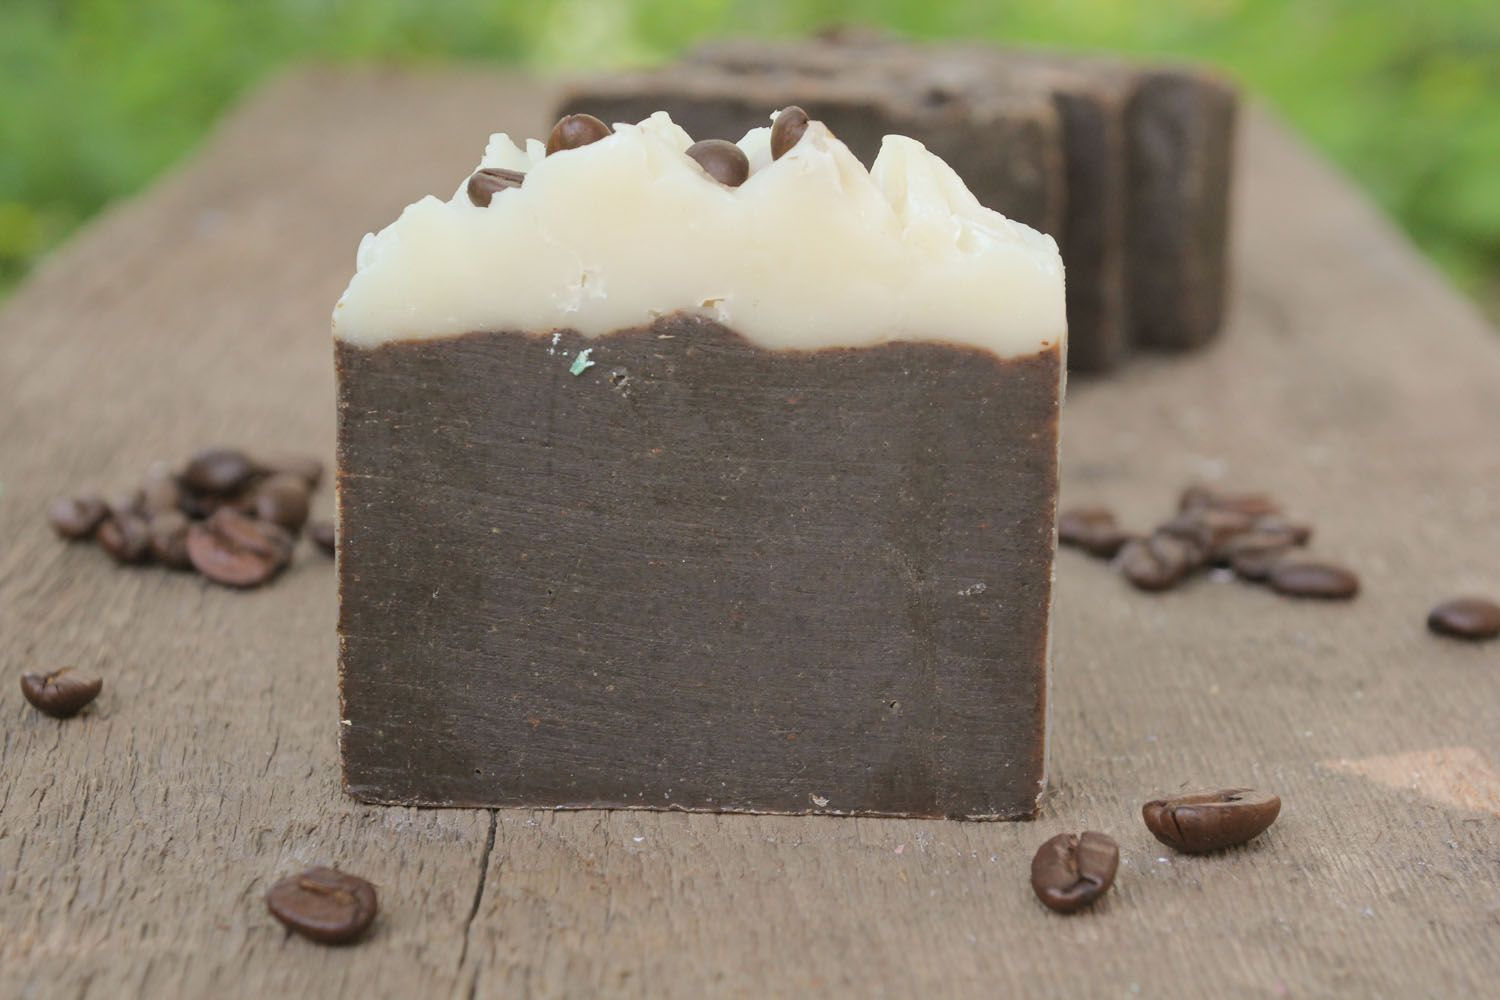 Handmade soap with cocoa and coffee photo 5